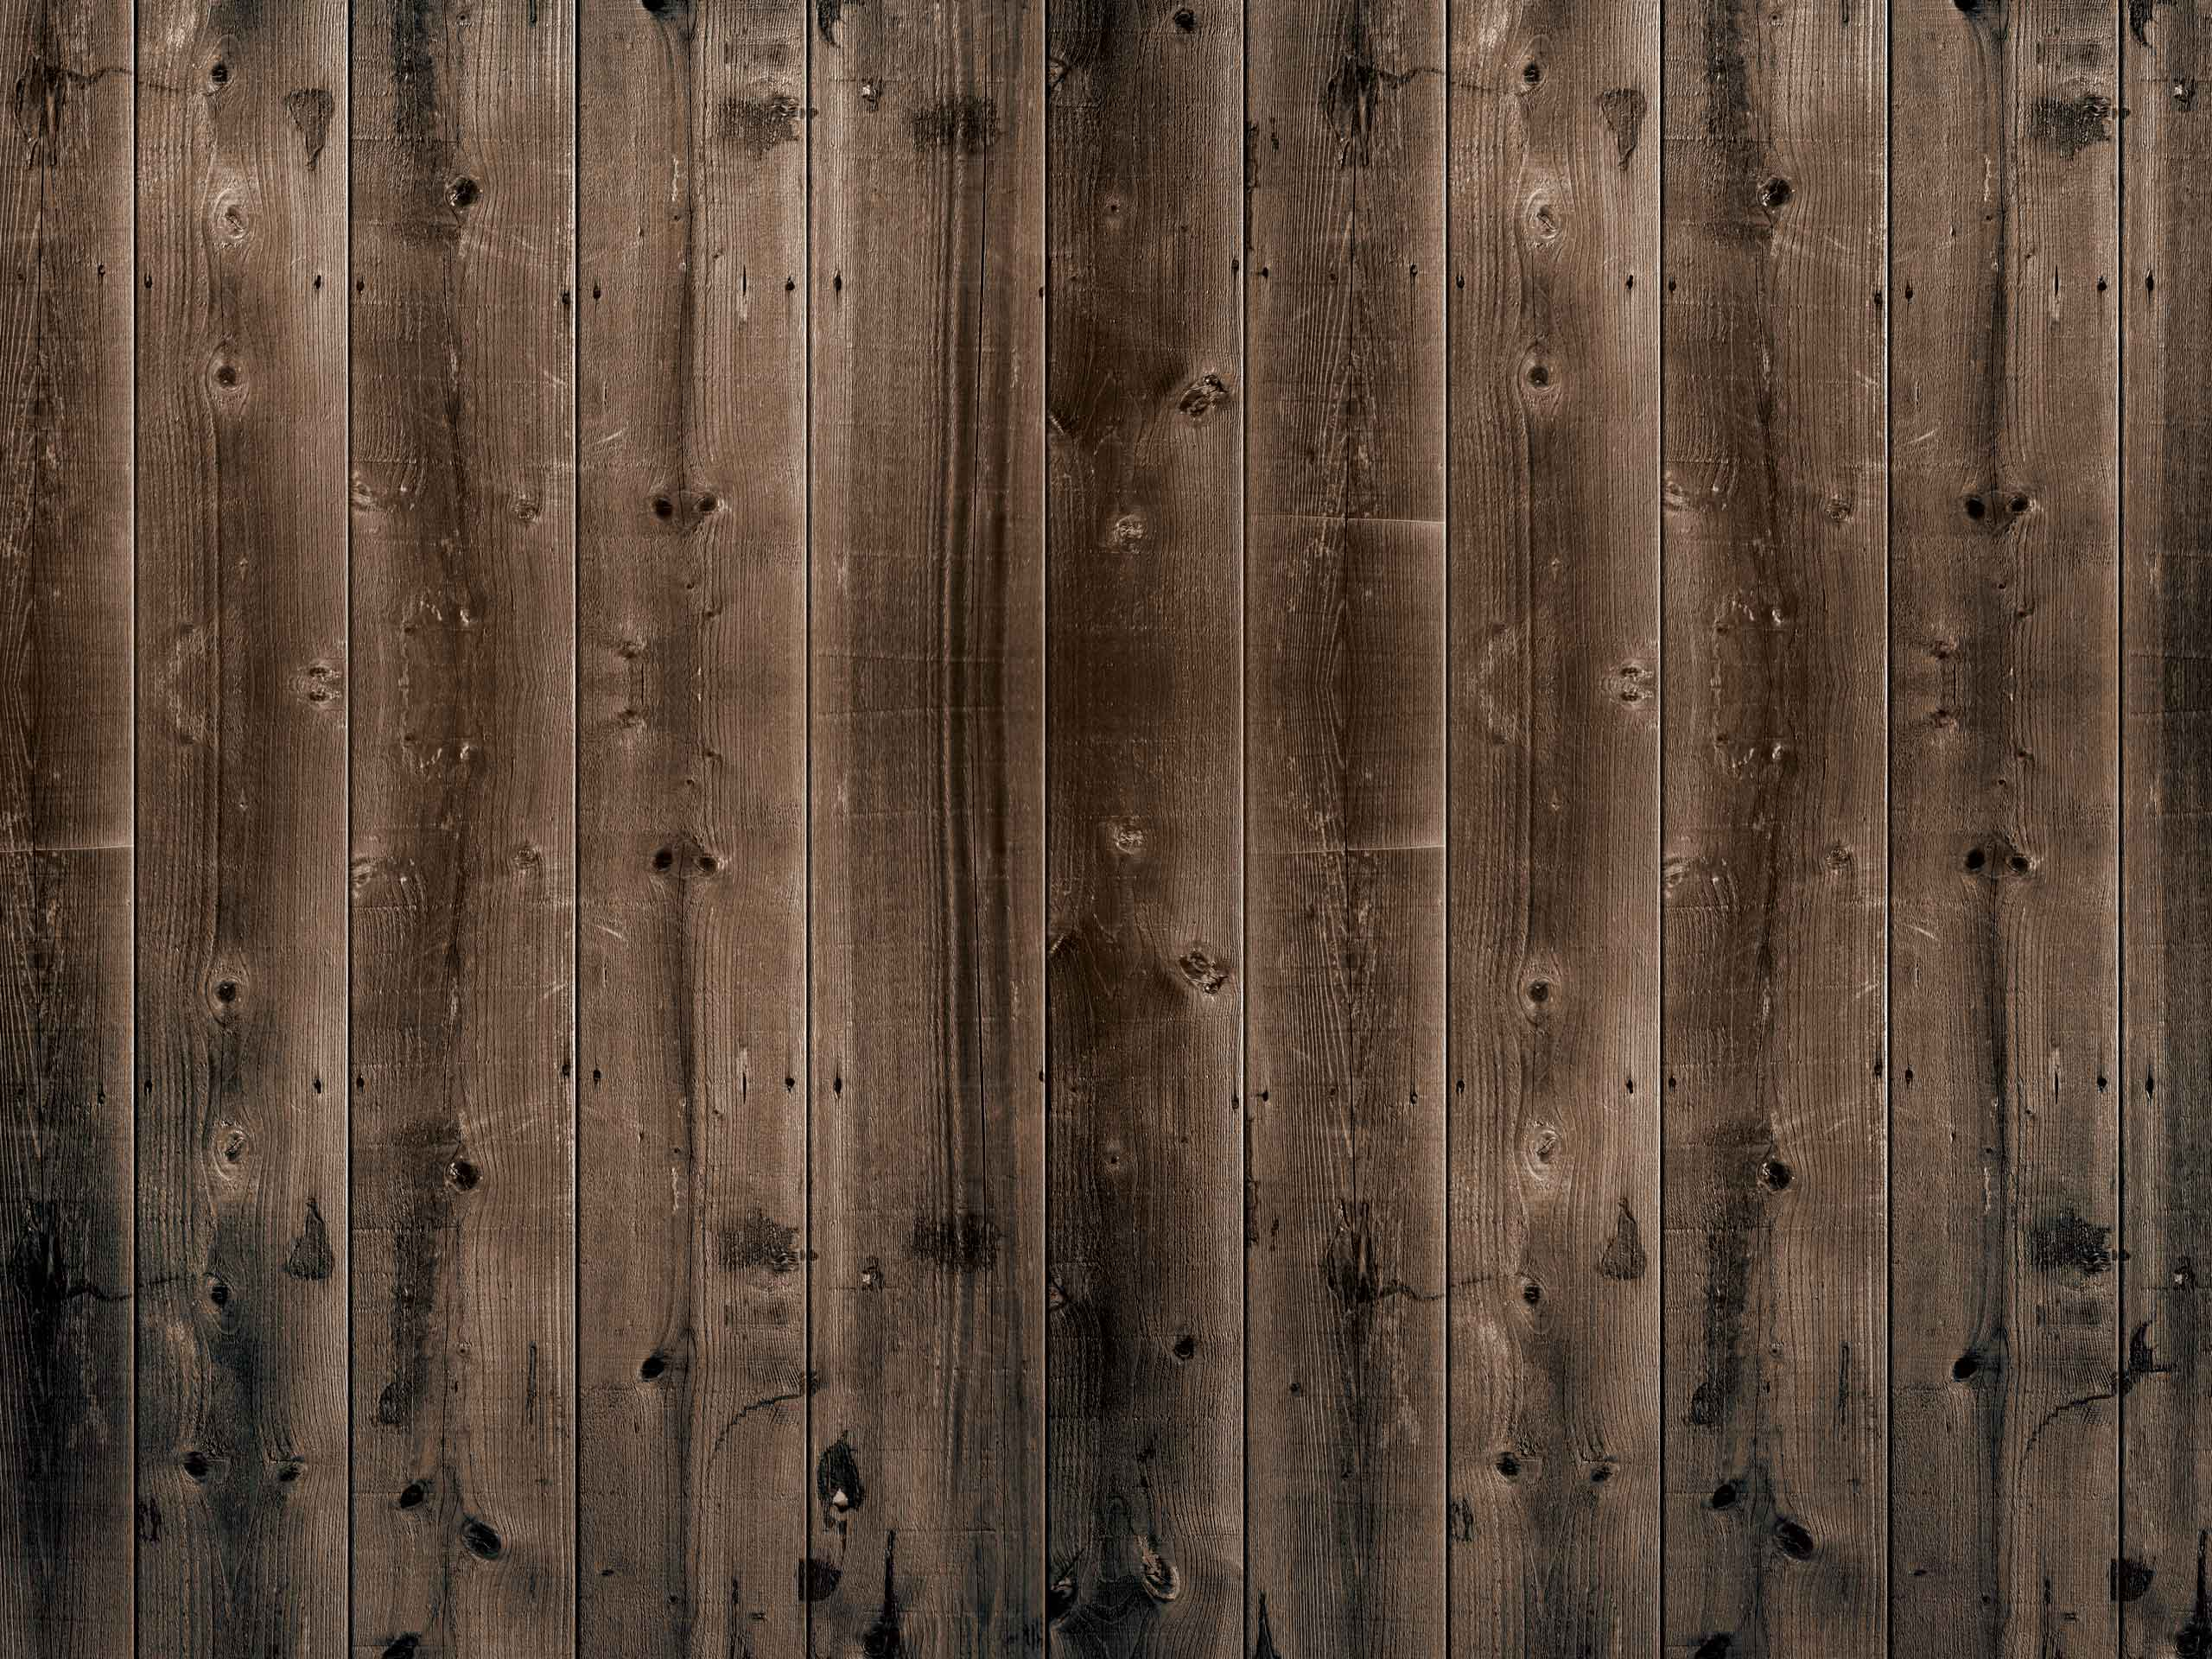 Barn Wood Background Barnwood websizejpg 2560x1920